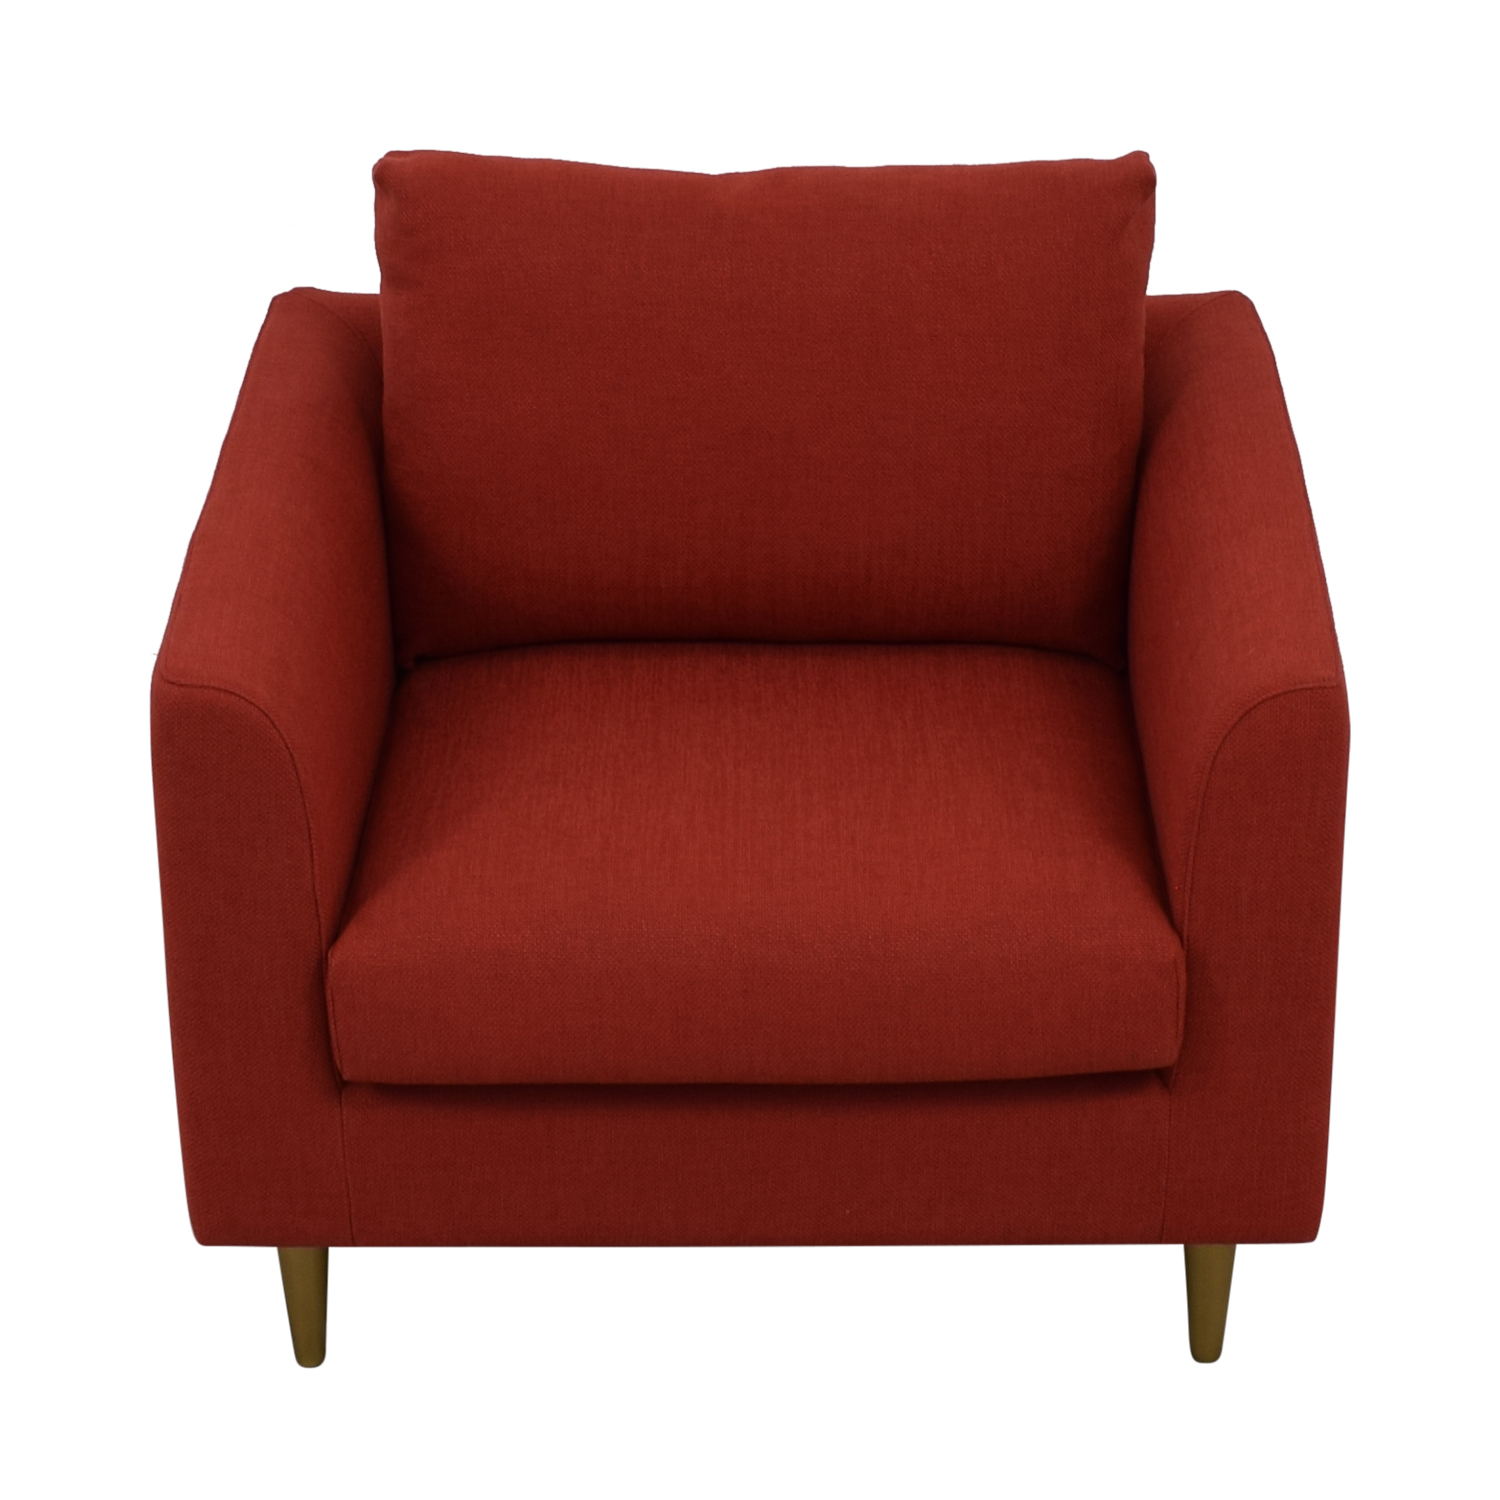 Owens Red Accent Chair red